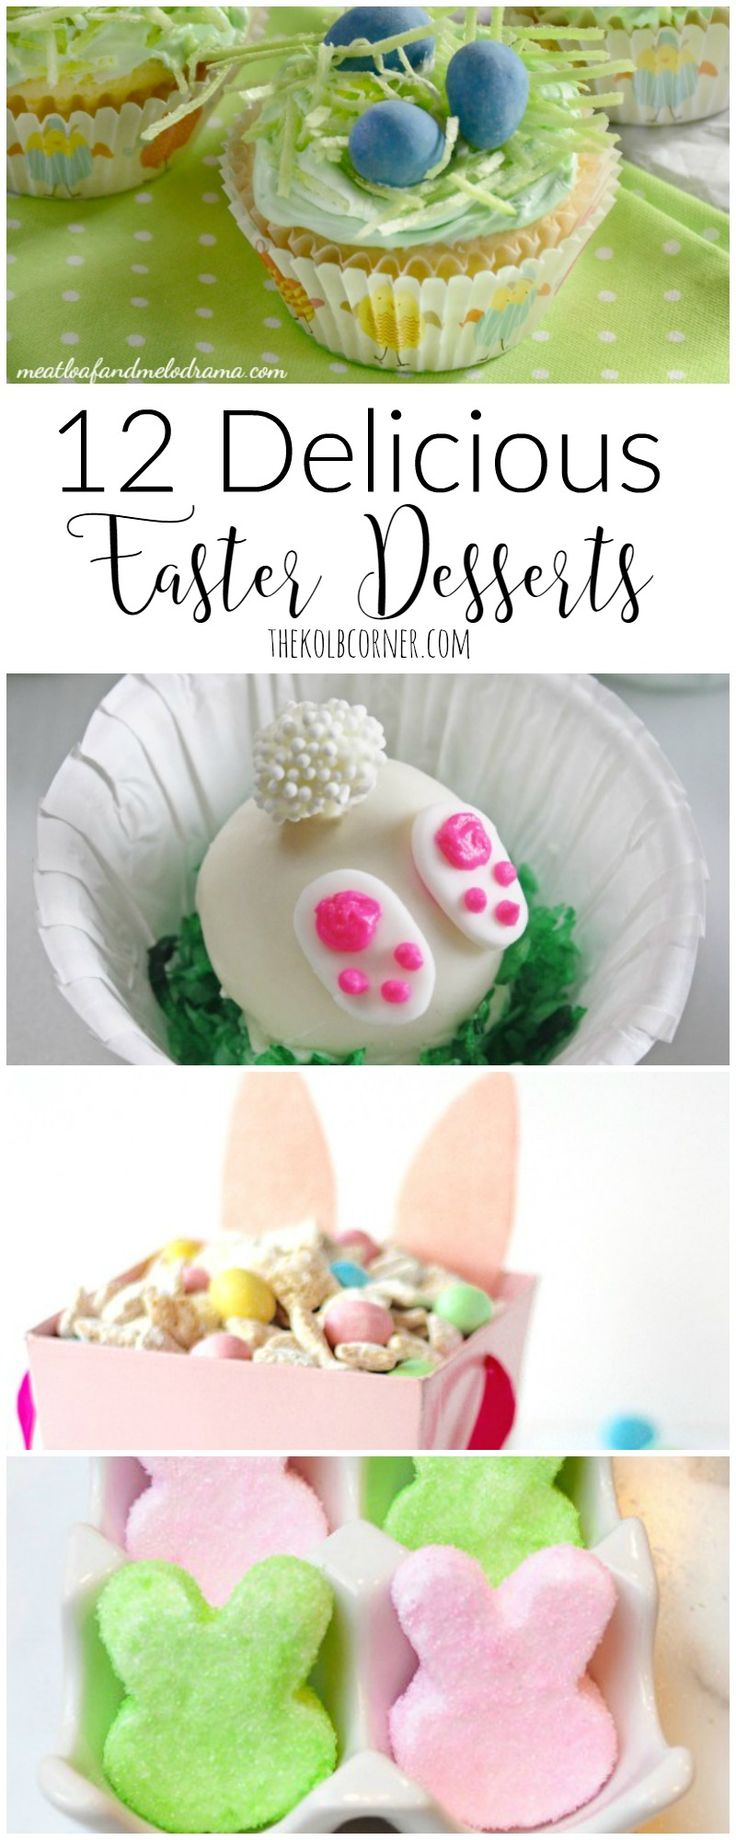 160 best easter ideas images on pinterest anniversary ideas 12 delicious easter desserts negle Choice Image